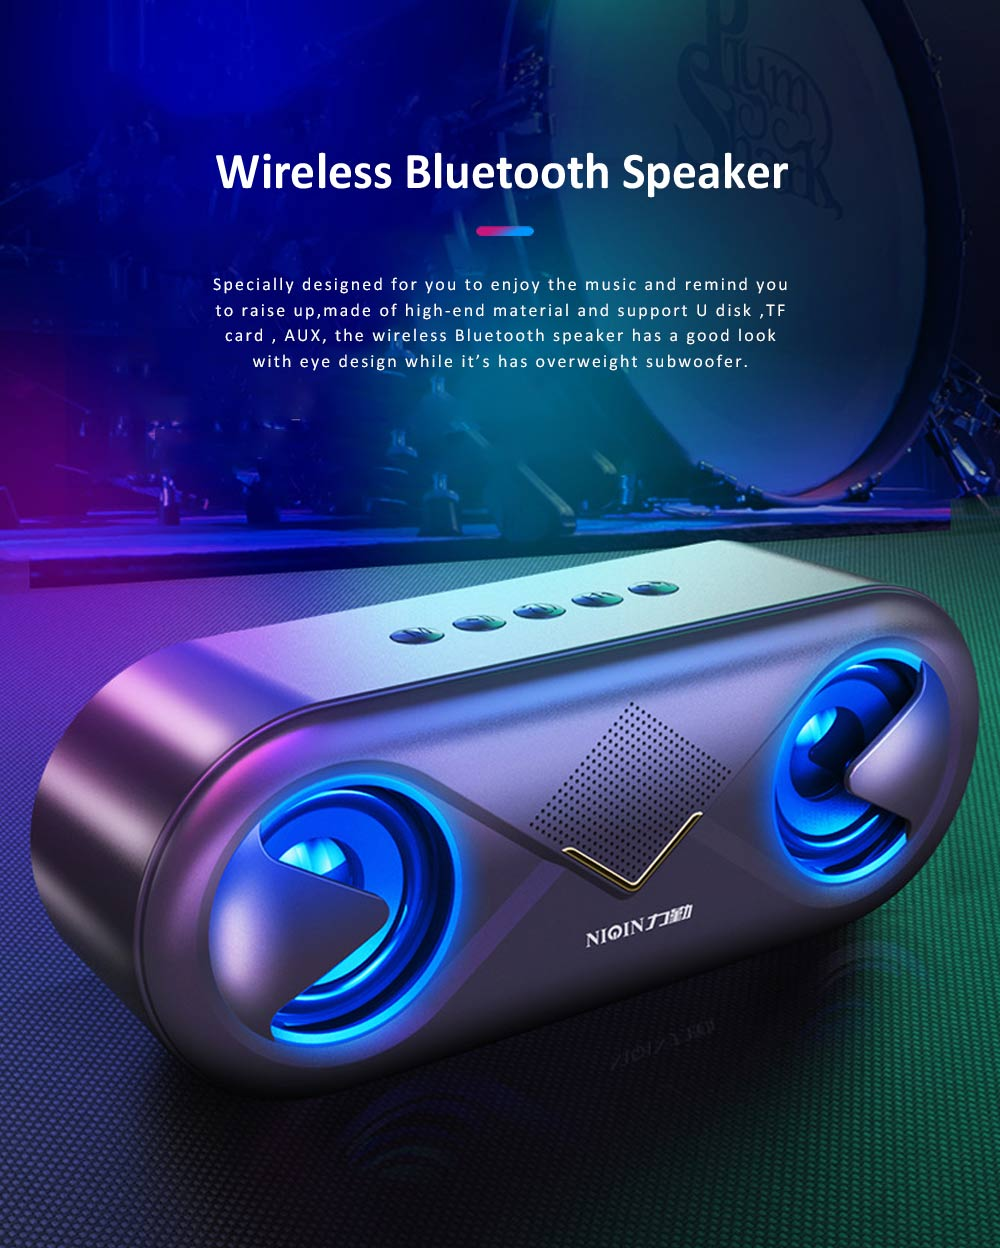 Cellular Wireless Bluetooth Speaker, Portable Desktop Home Speaker, Bionic Eye Design Subwoofer with Alarm Clock 0